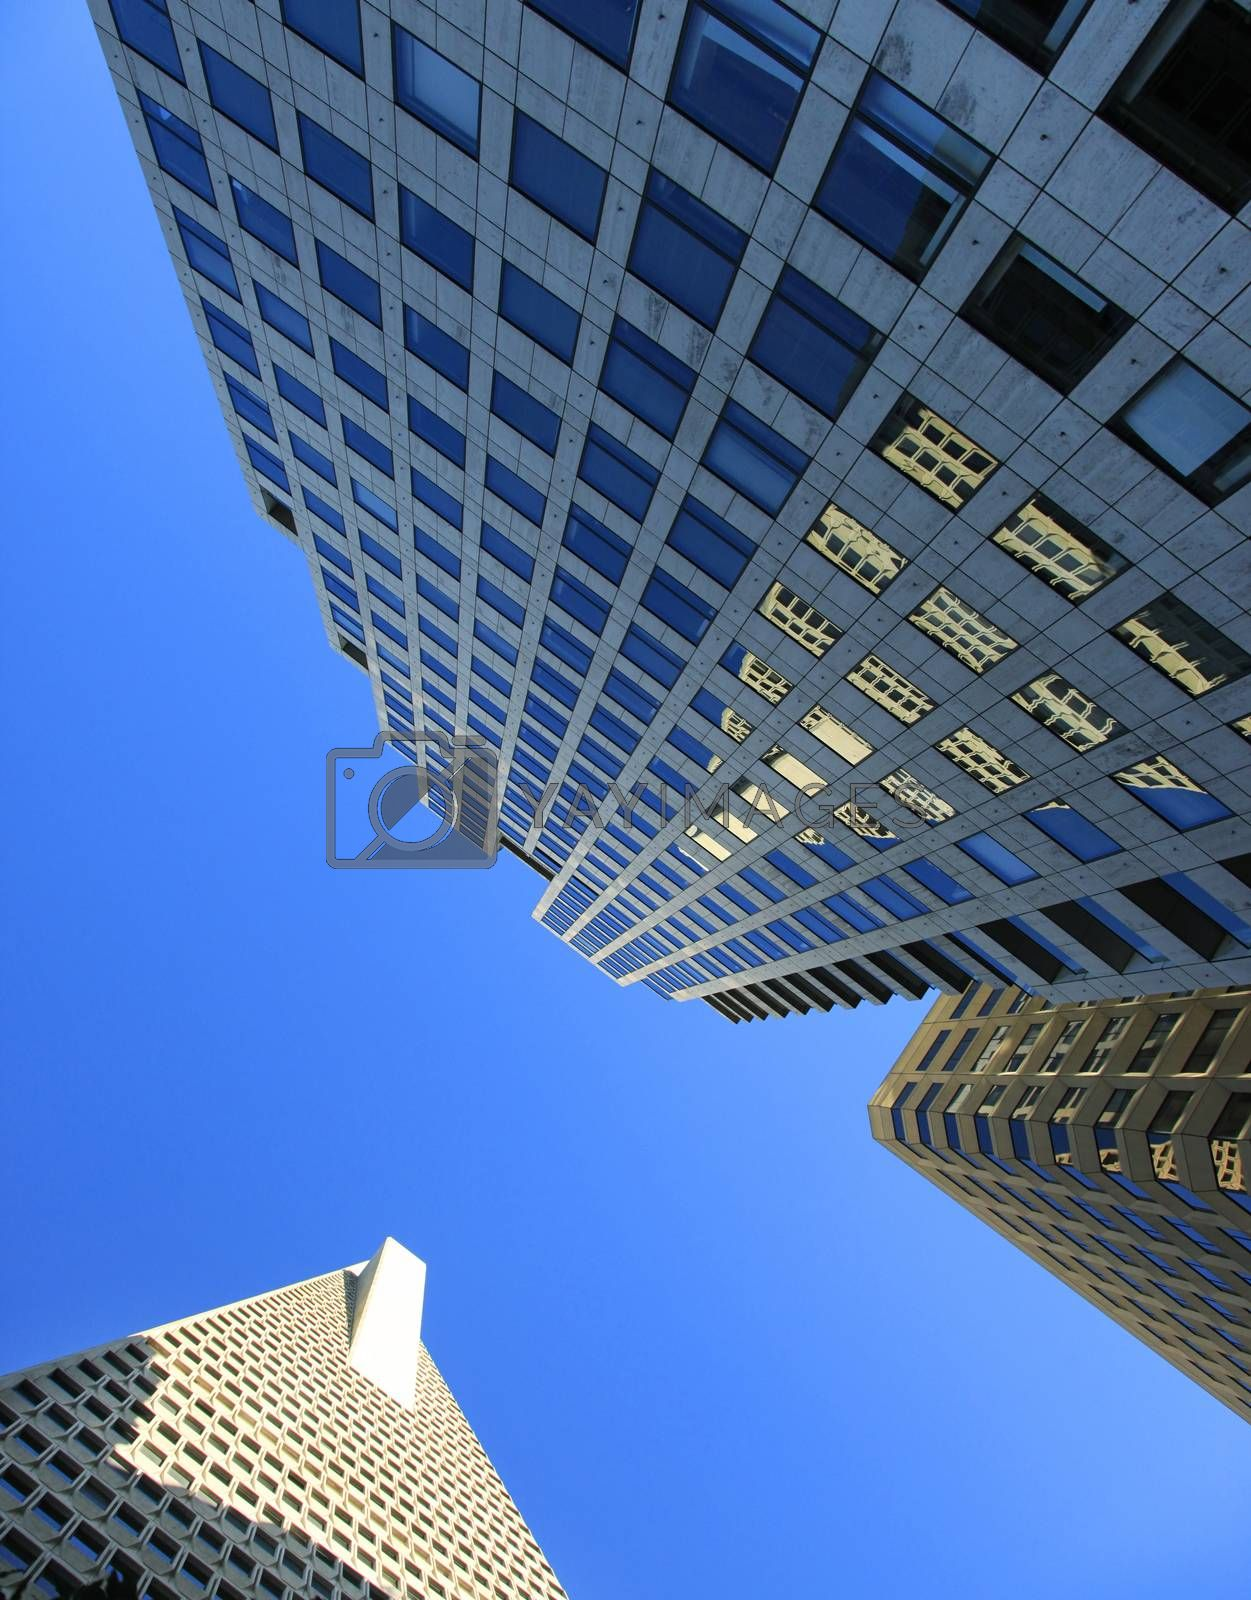 California Street (right) and 388 Market Street Building (left) - skyscrapers located in the Financial District of San Francisco